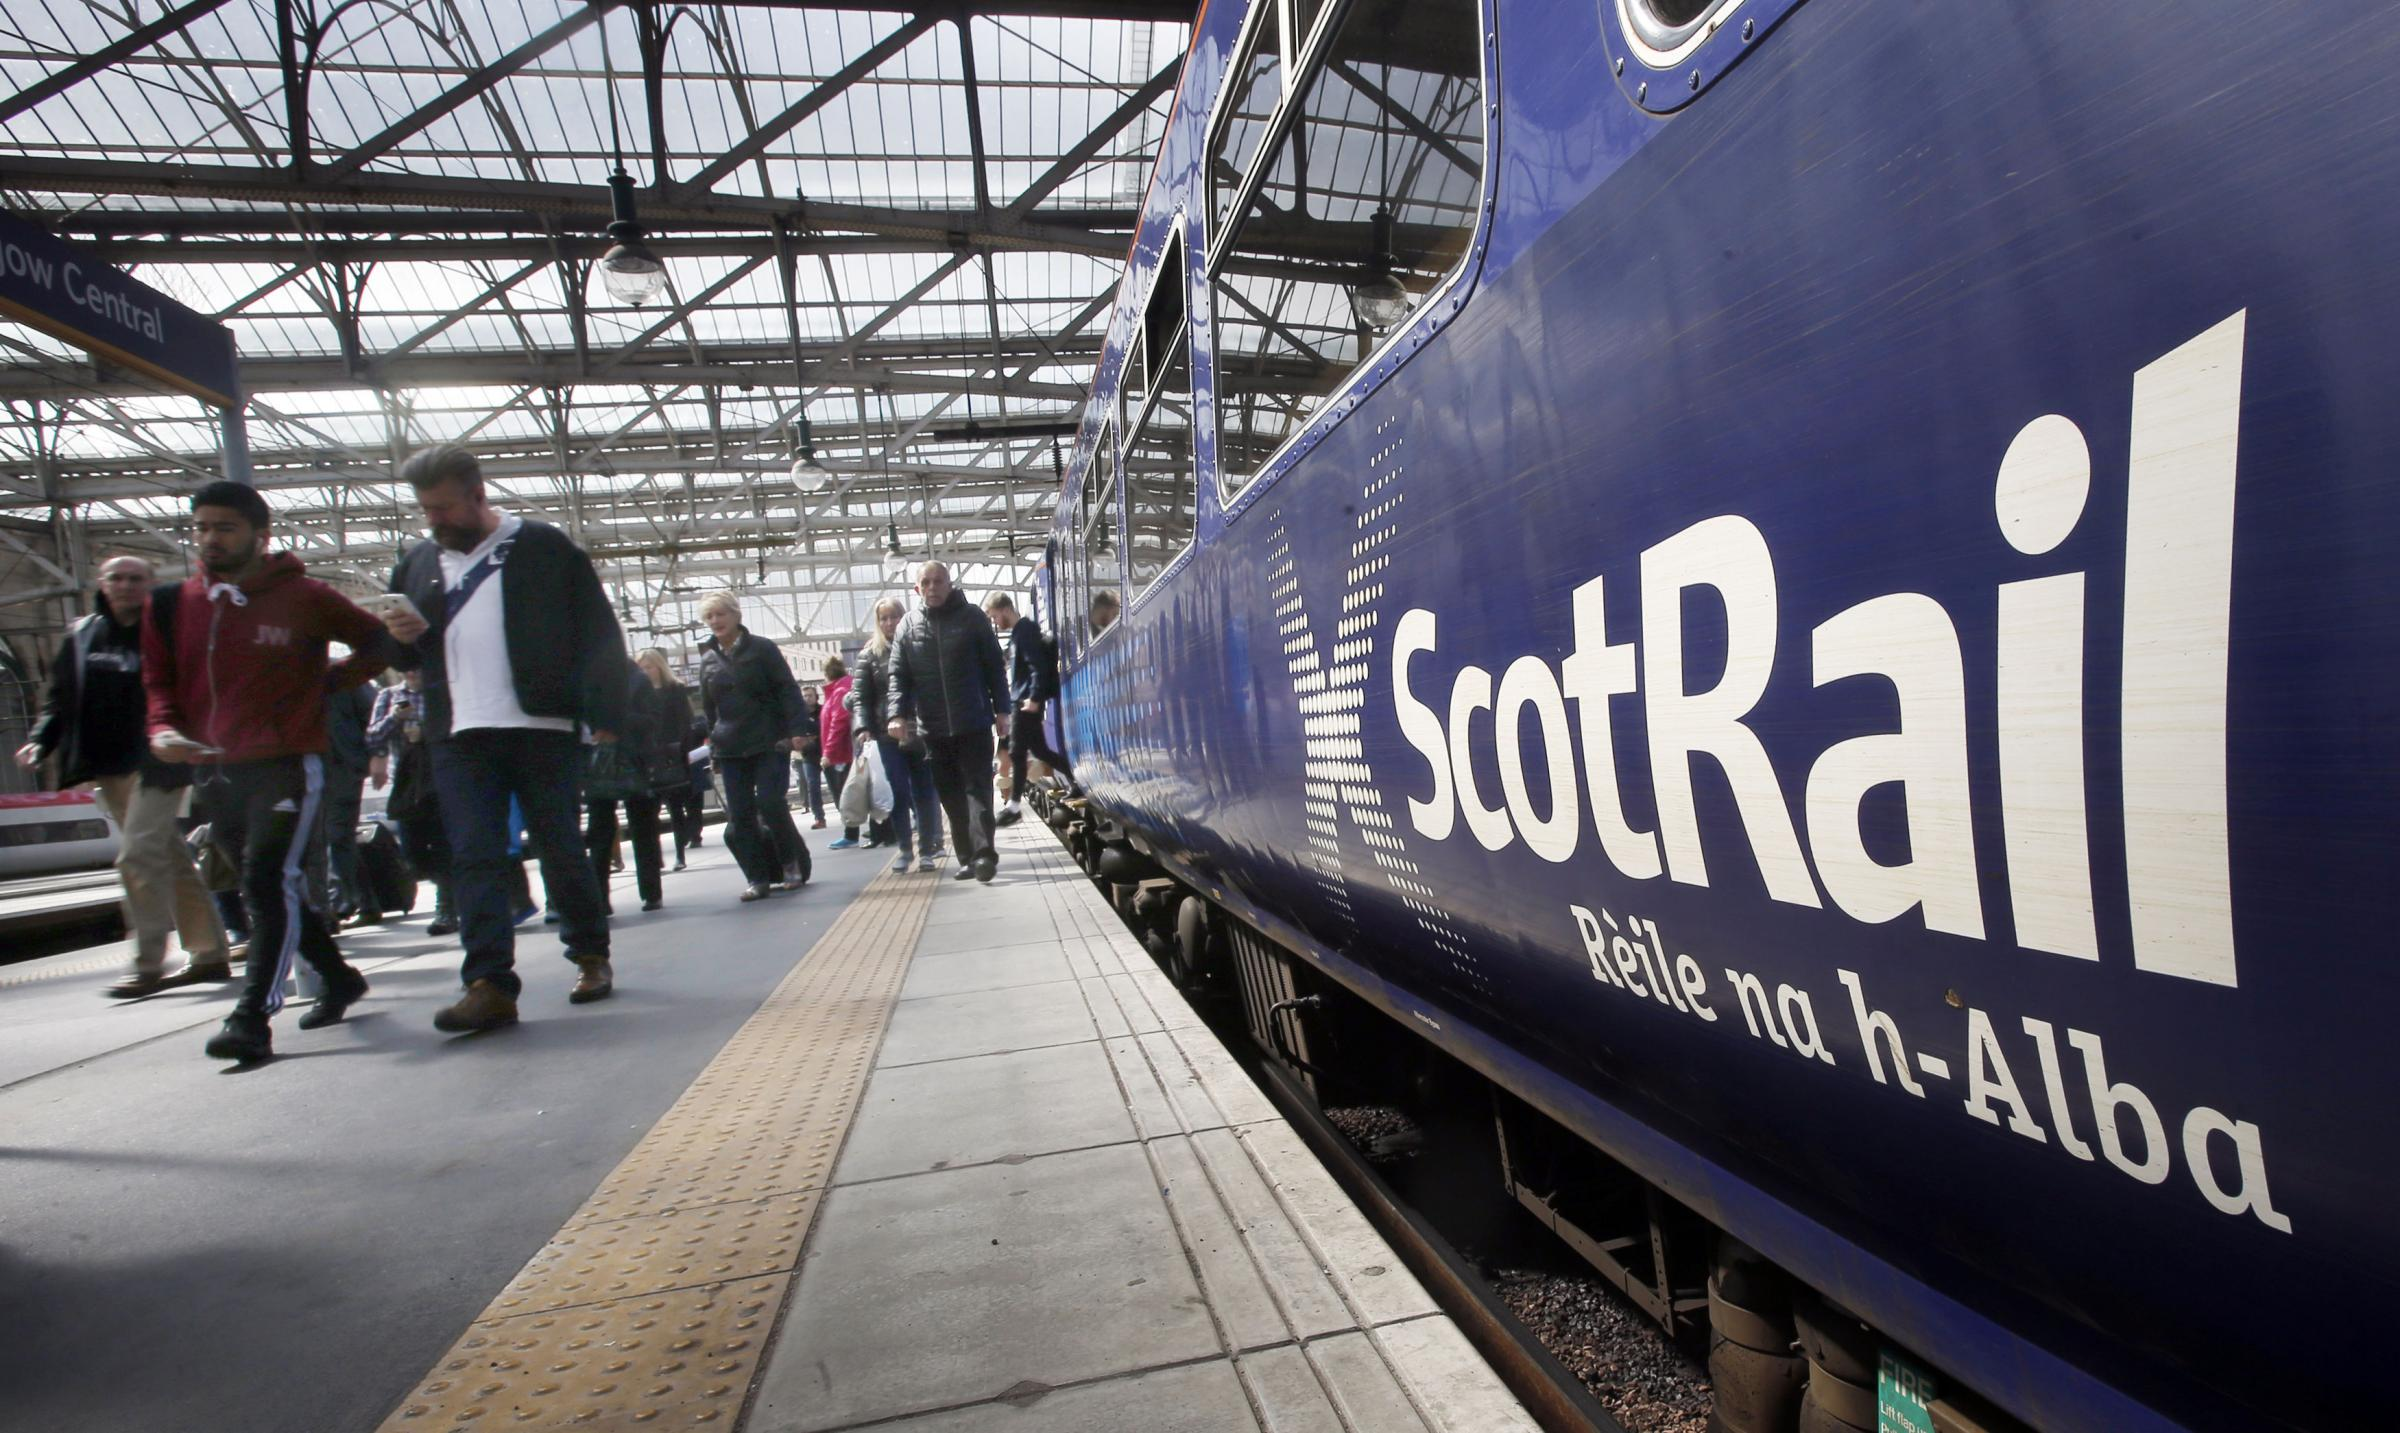 File photo dated 29/05/15 of a ScotRail train operated by Abellio at Glasgow Central Station in Scotland. Abellio ScotRail made a loss of £3.5 million after tax in its first full year of operating train services in Scotland, new accounts show